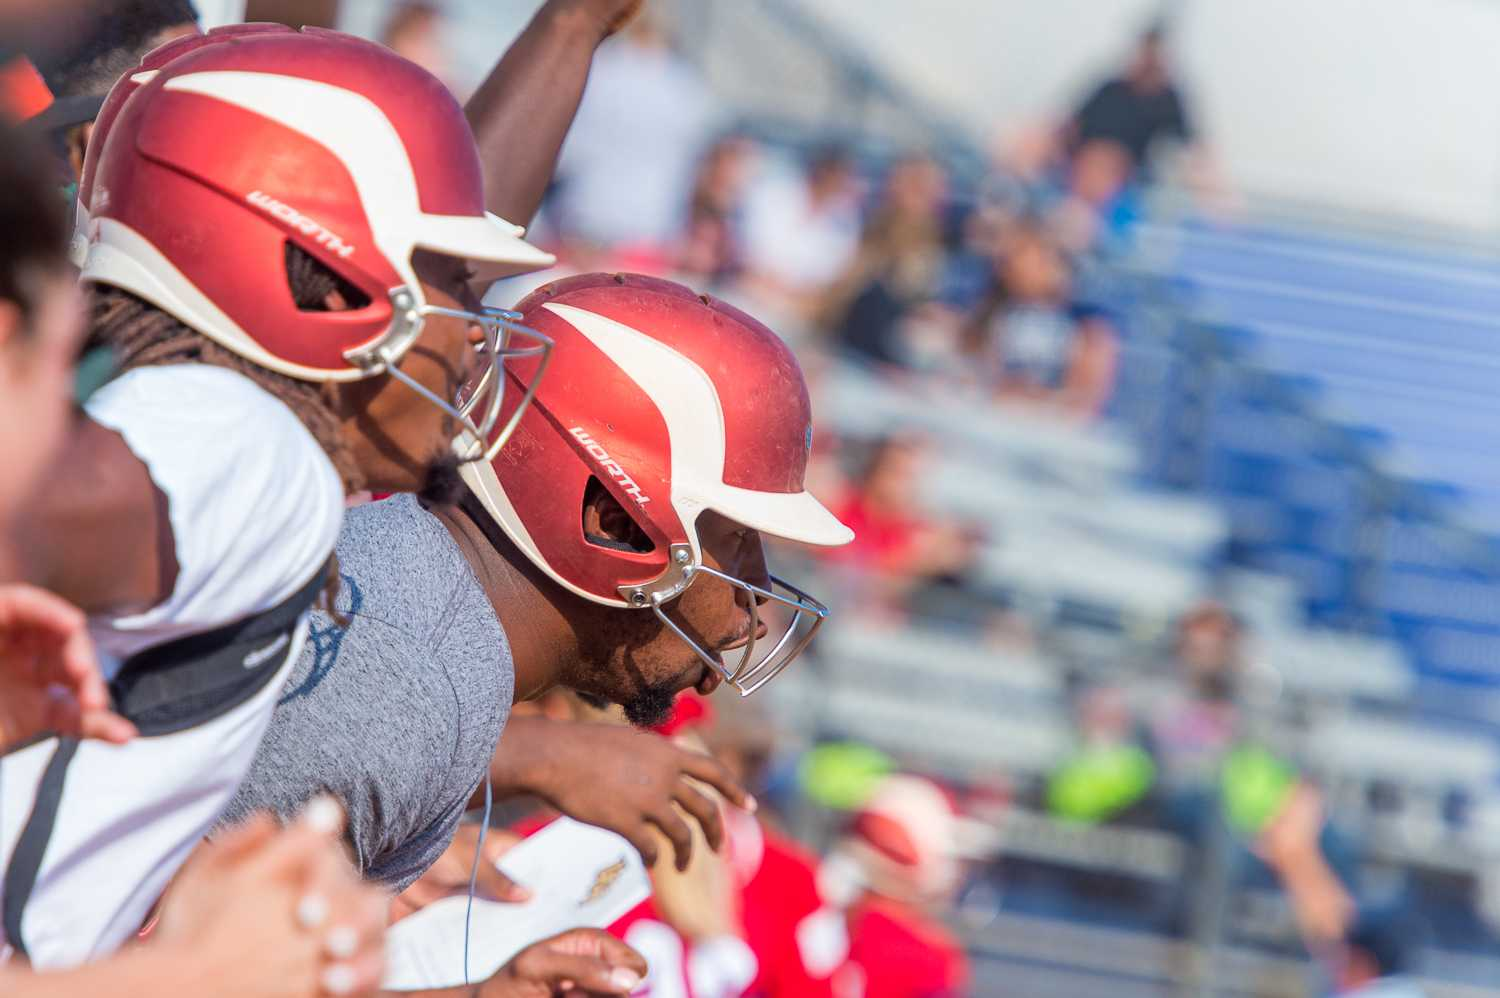 Quarterback Jaquez Johnson cheers on the softball team during their game against UCF, while him and other football players wear softball helmets.